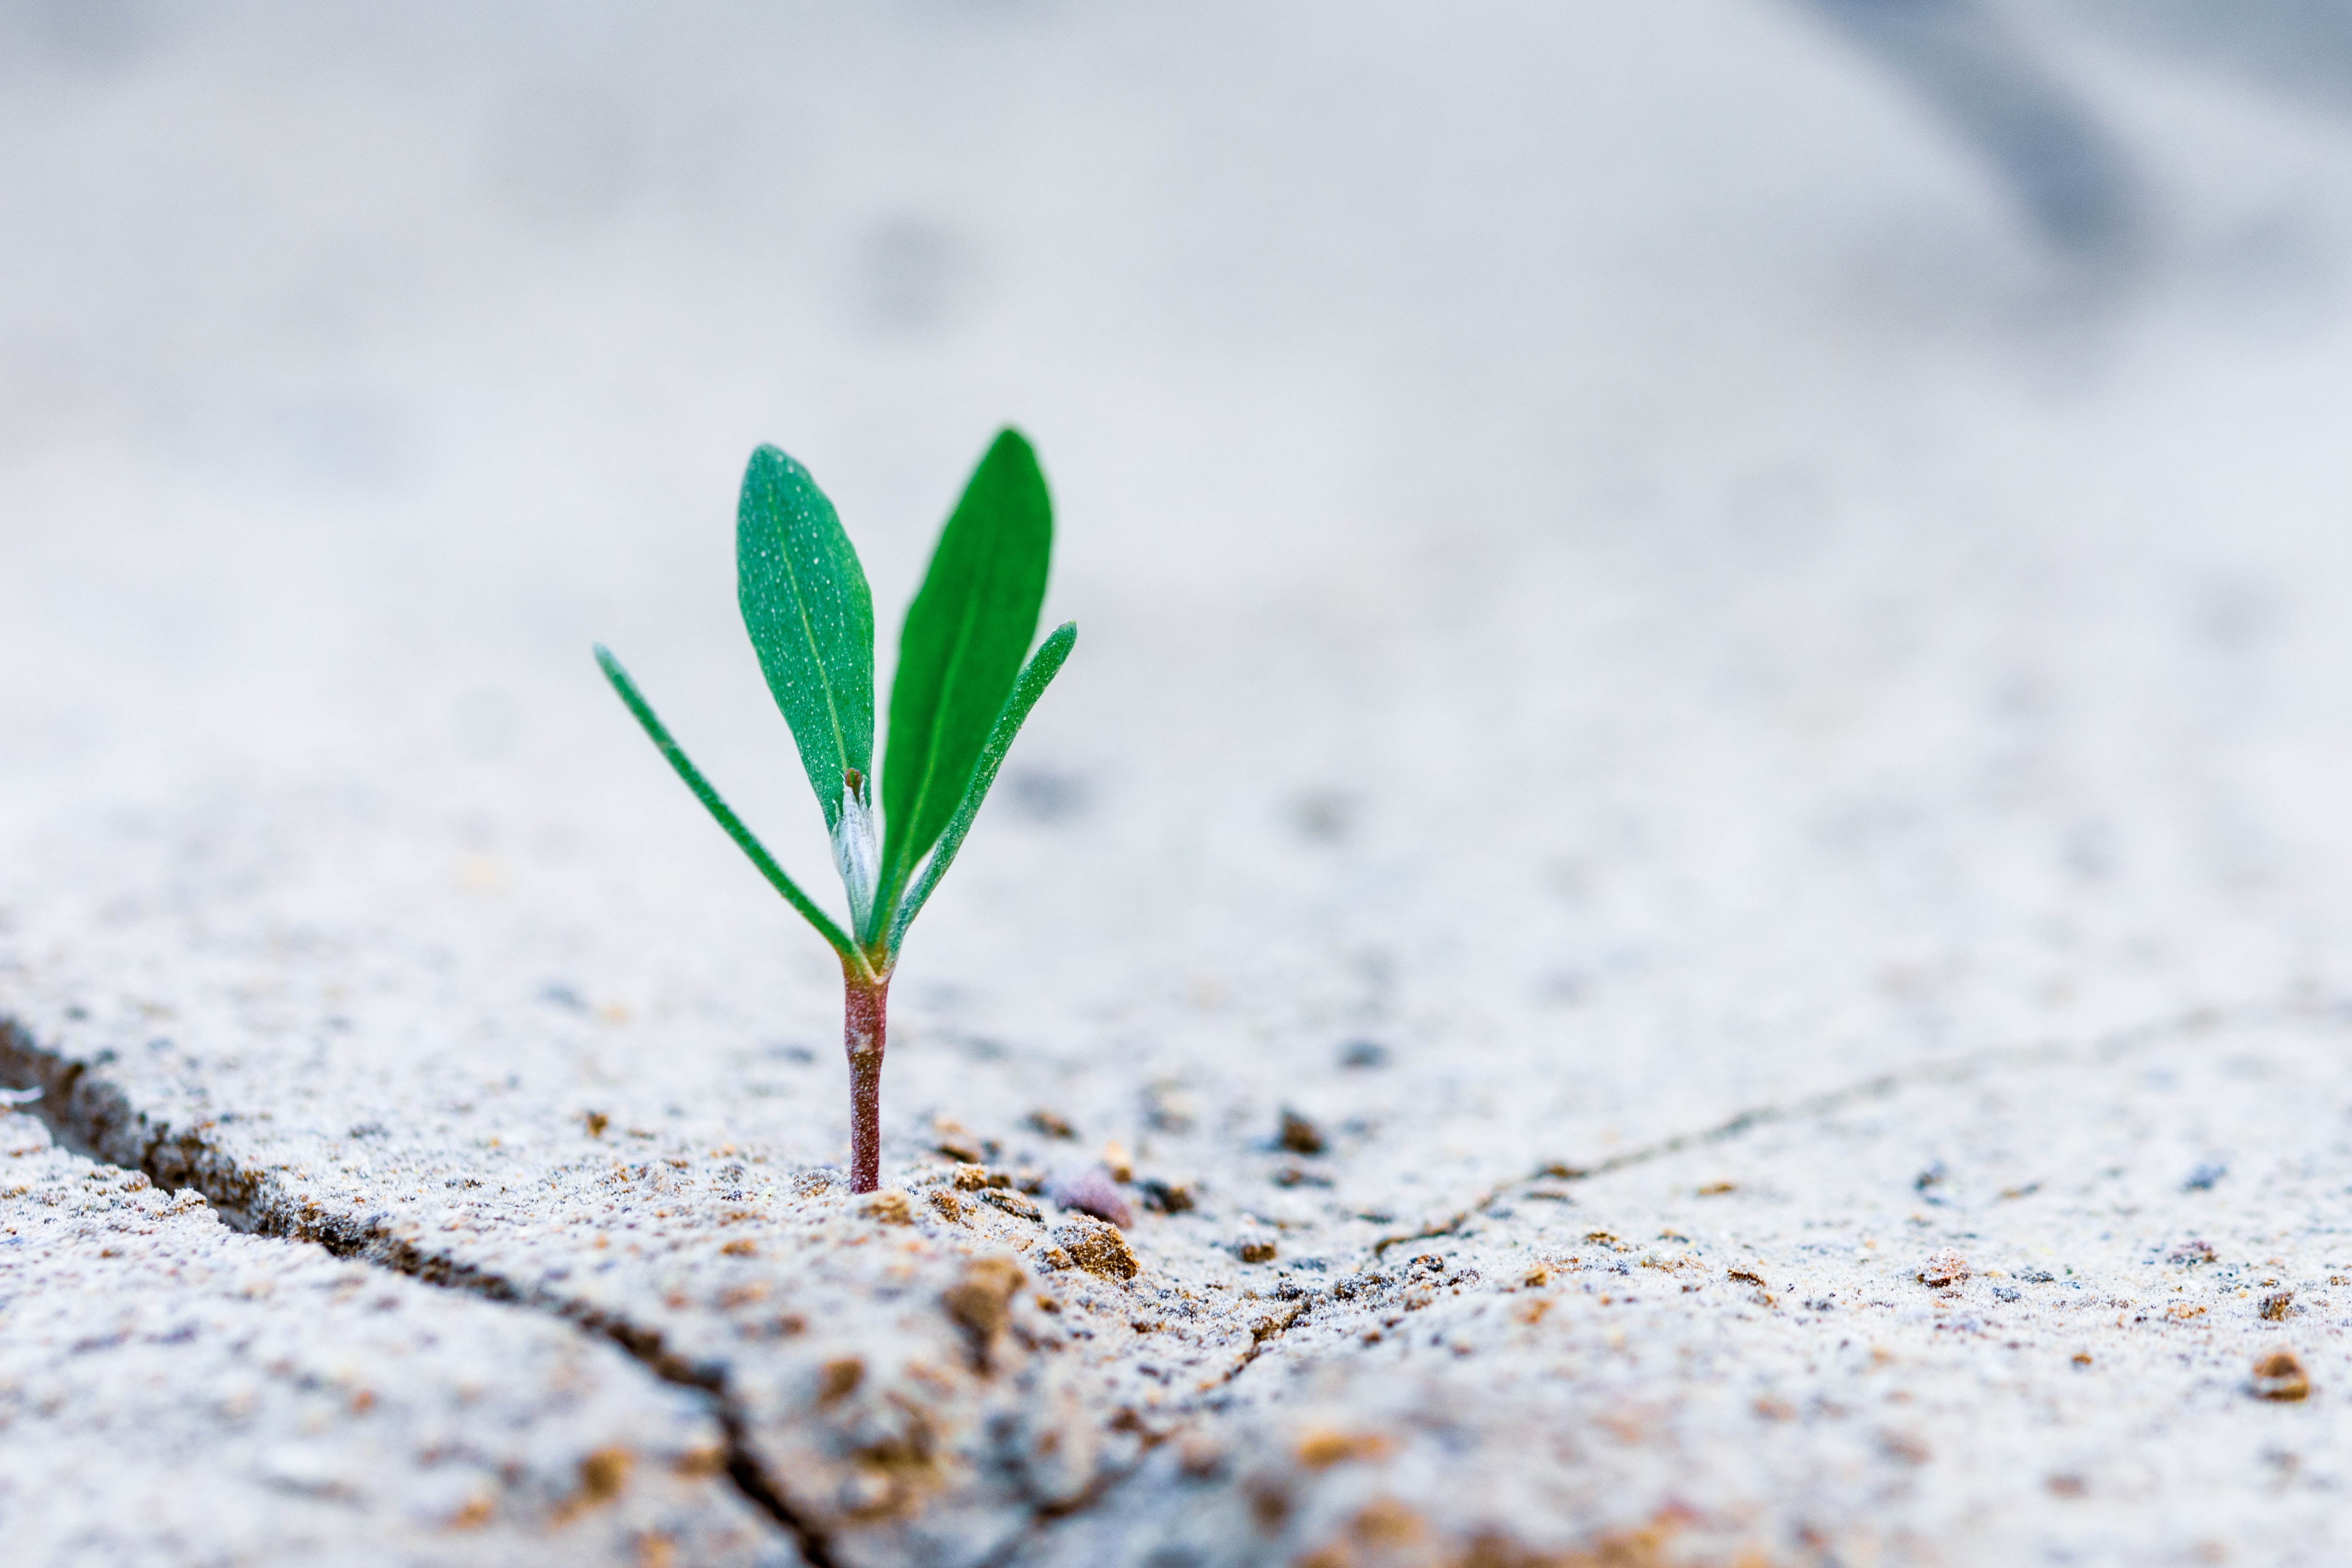 10 Fixed vs Growth Mindset Examples